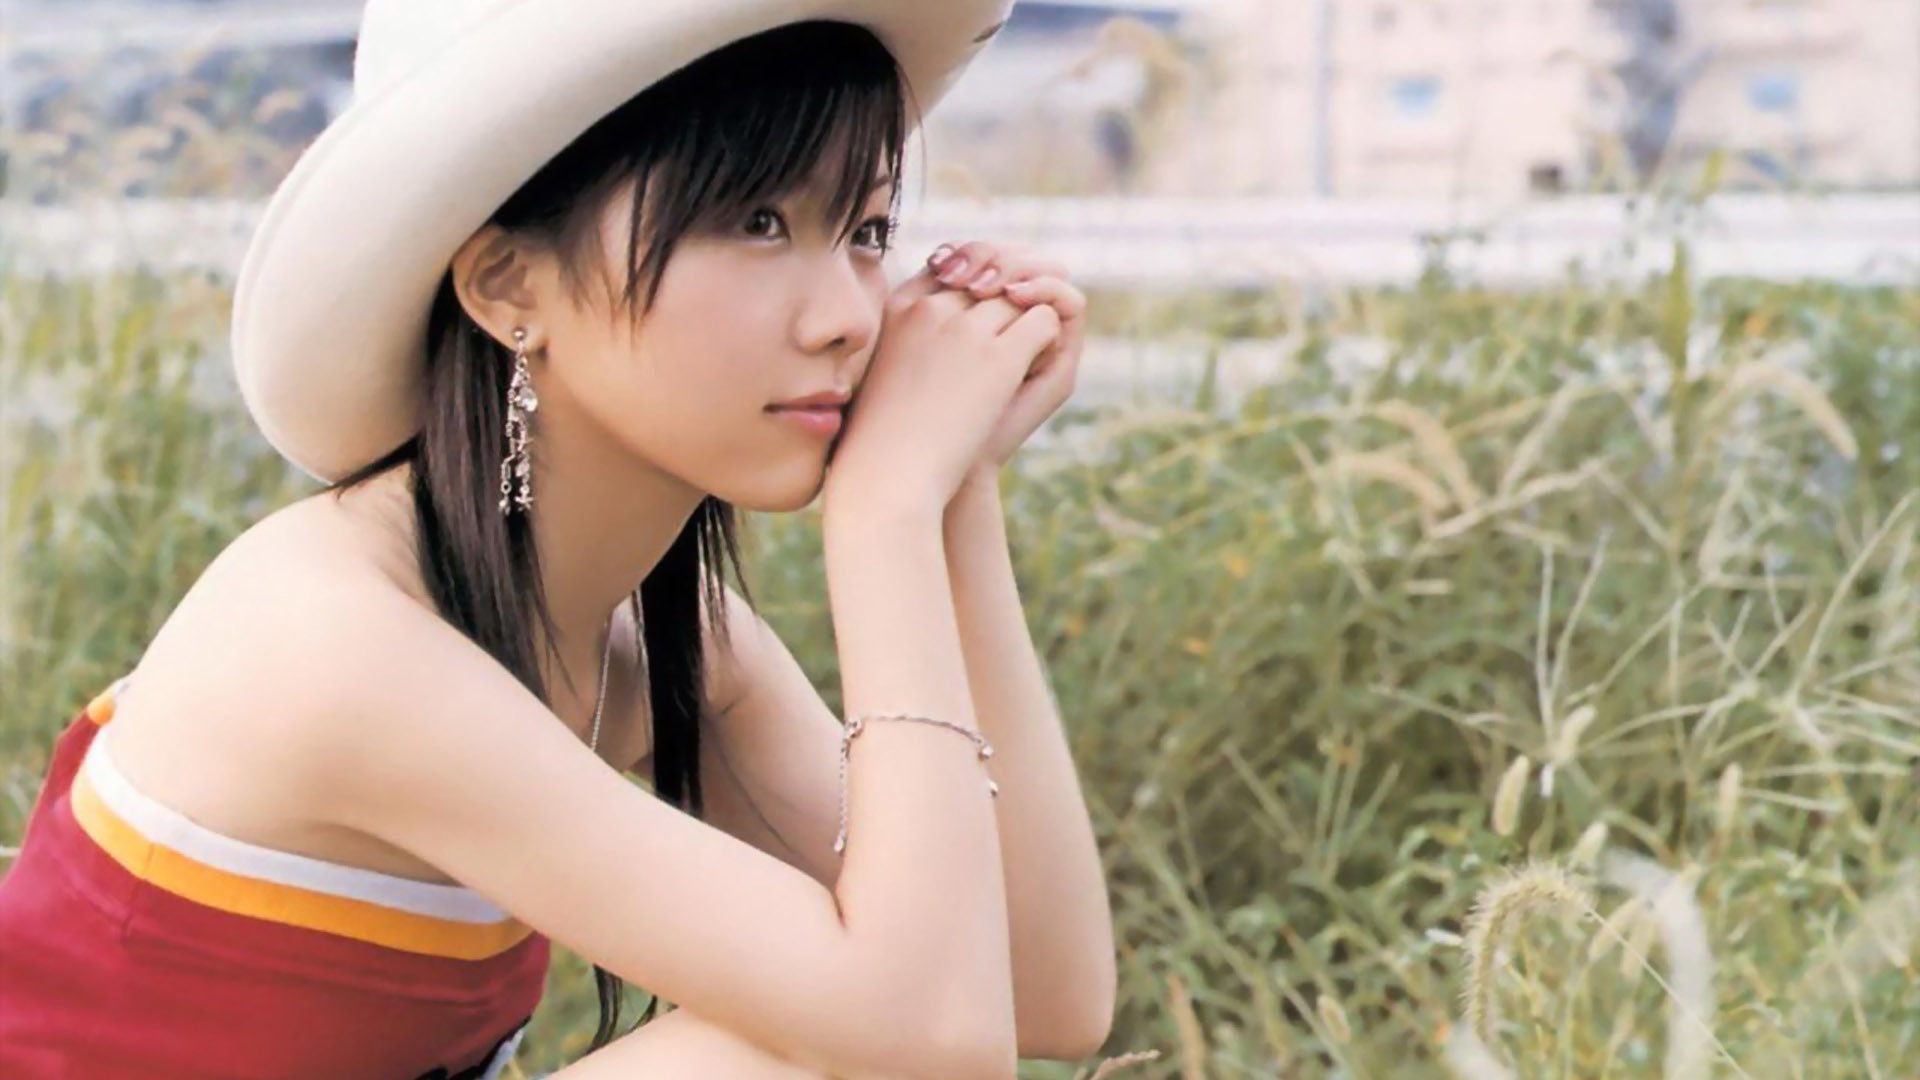 fields single asian girls Anyone who wants to have an exotic love life needs to know how to meet single asian girls asian women are some of the most beautiful women in the world, and courting them is unlike any other dating experience.